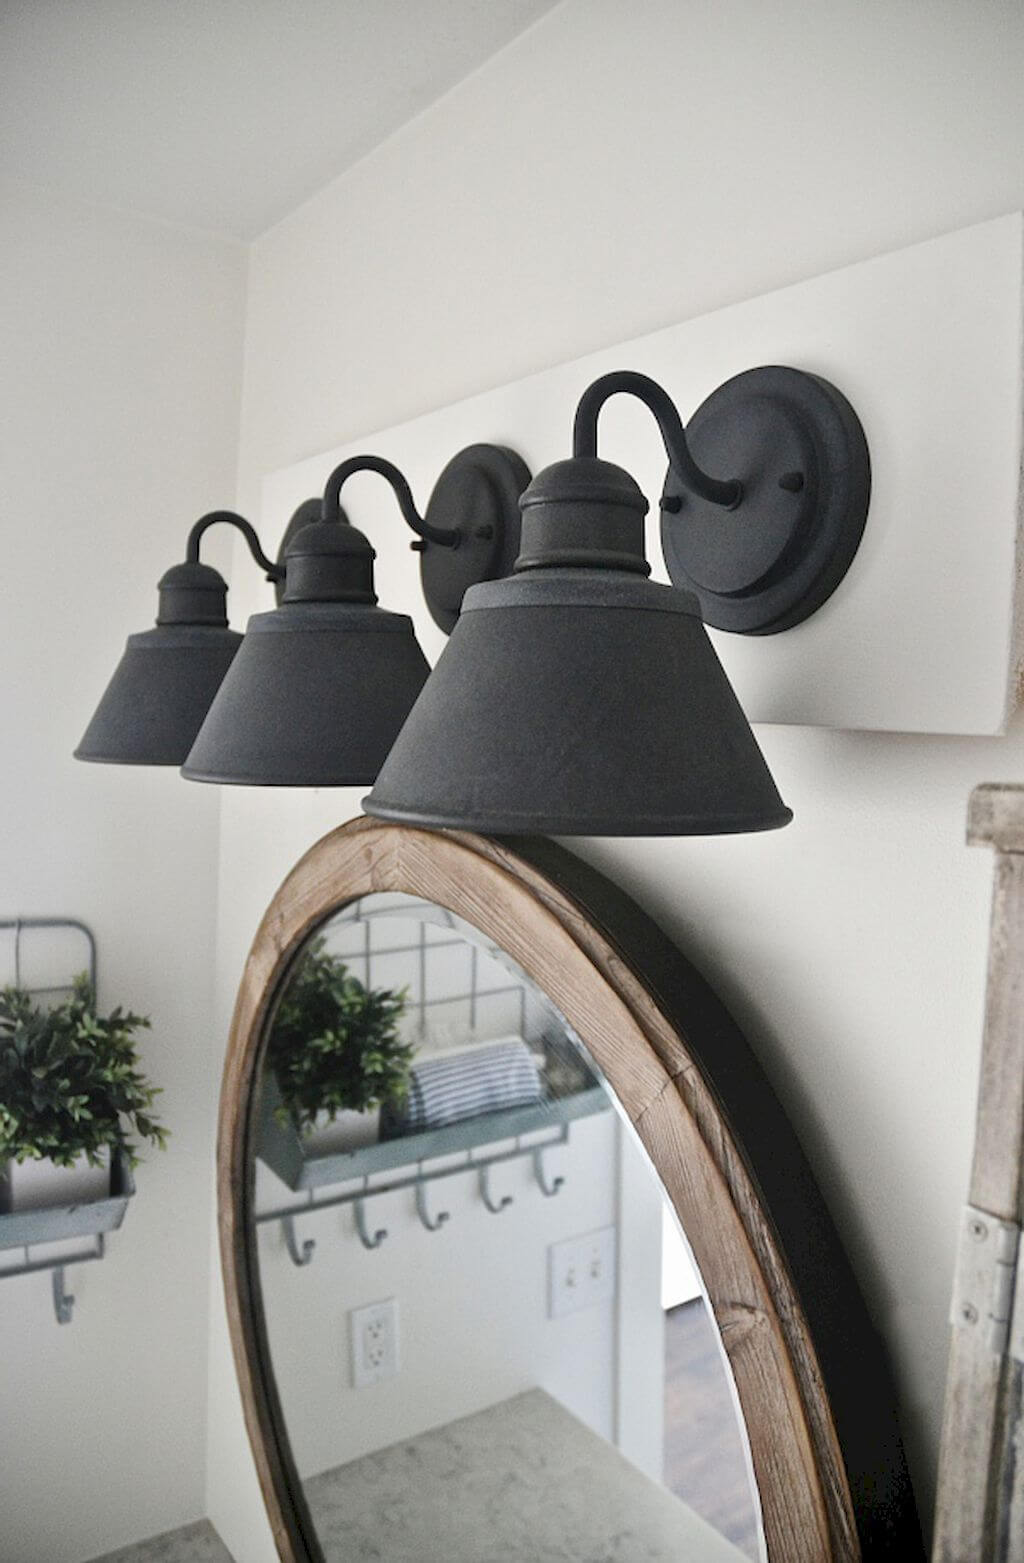 Matte Black Gooseneck Light Post Bathroom Fixture